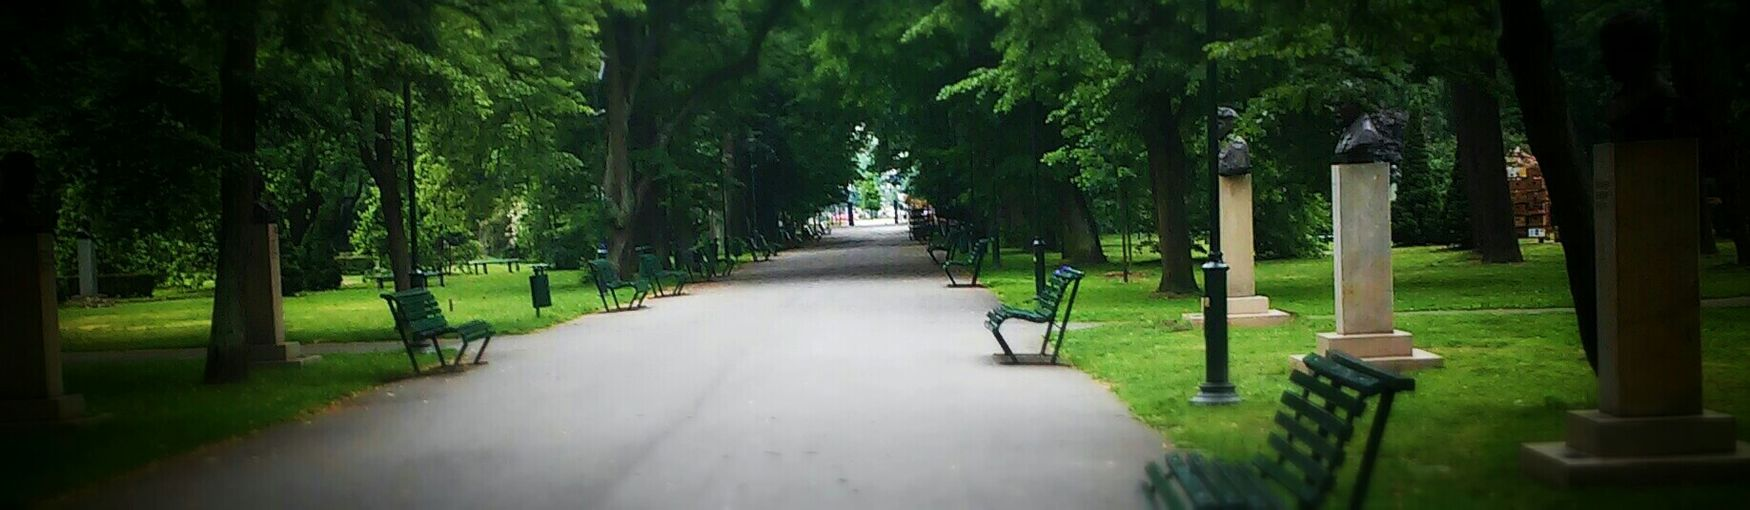 Park View Many Trees Fresh And Clean Rest & Relax Outside World